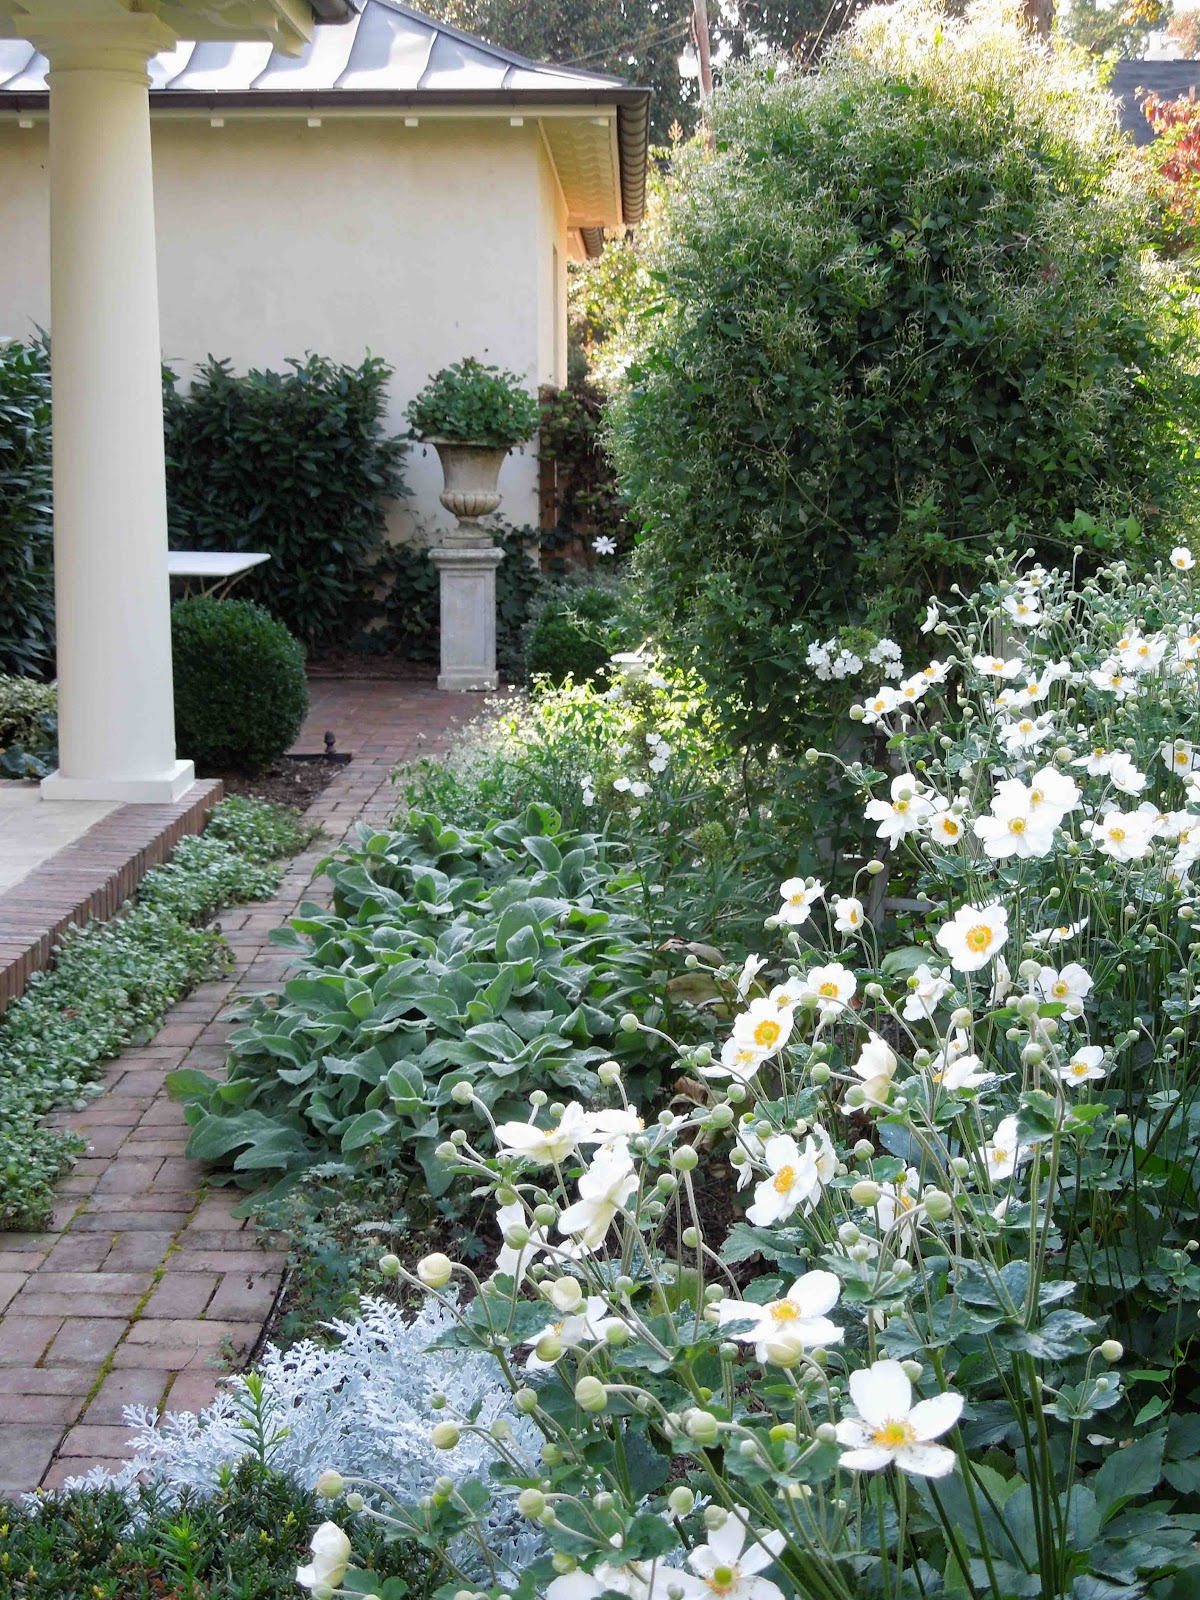 The White Border Is Located On The Right Side, And Features White Flowering  Plants Along With Silvery Gray Foliage.